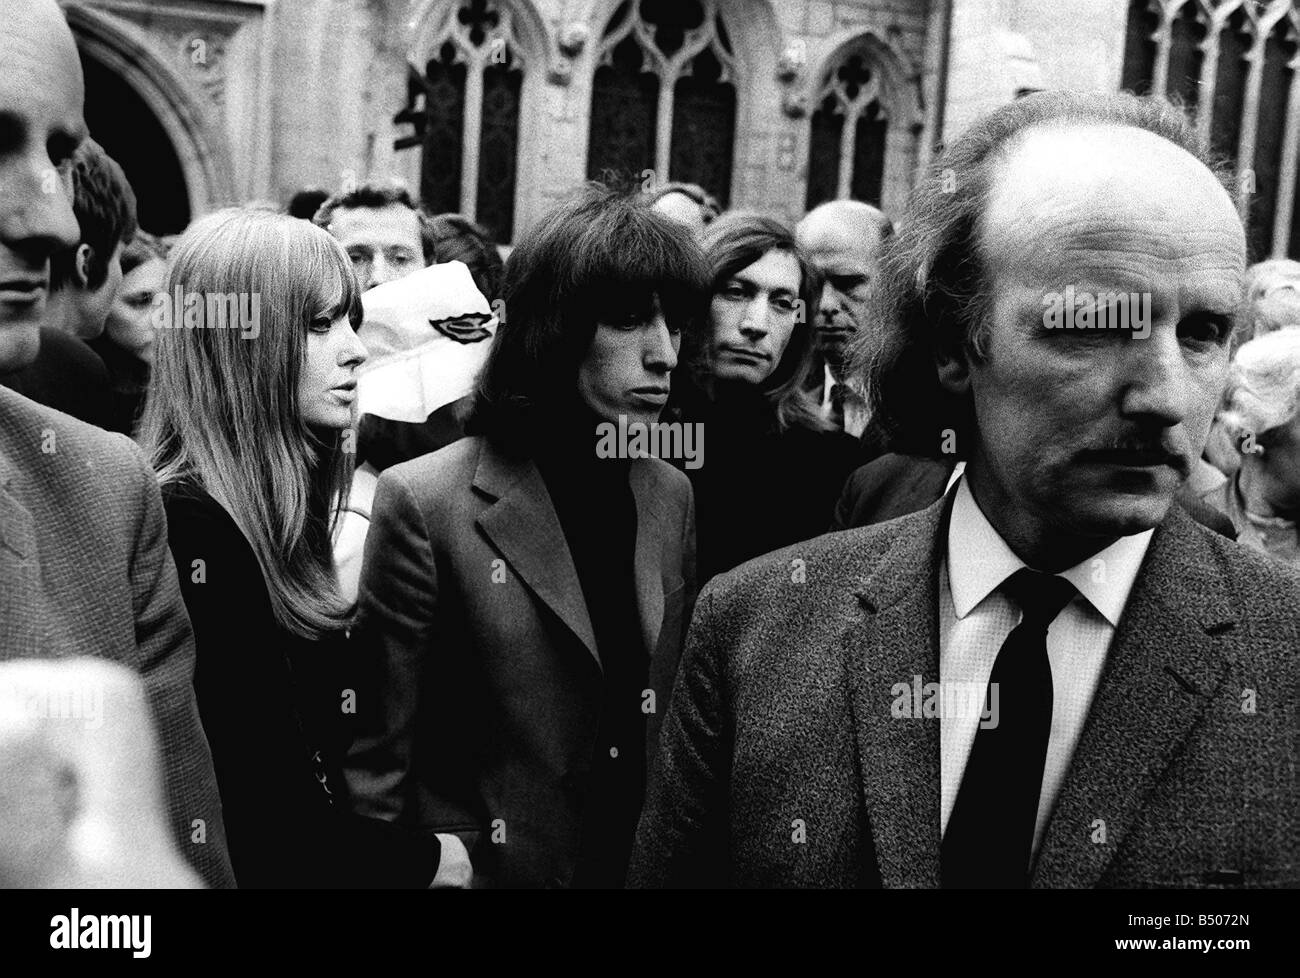 Charlie Watts and Bill Wyman at funeral of Brian Jones 1969 who was a band member of Rolling Stones - Stock Image